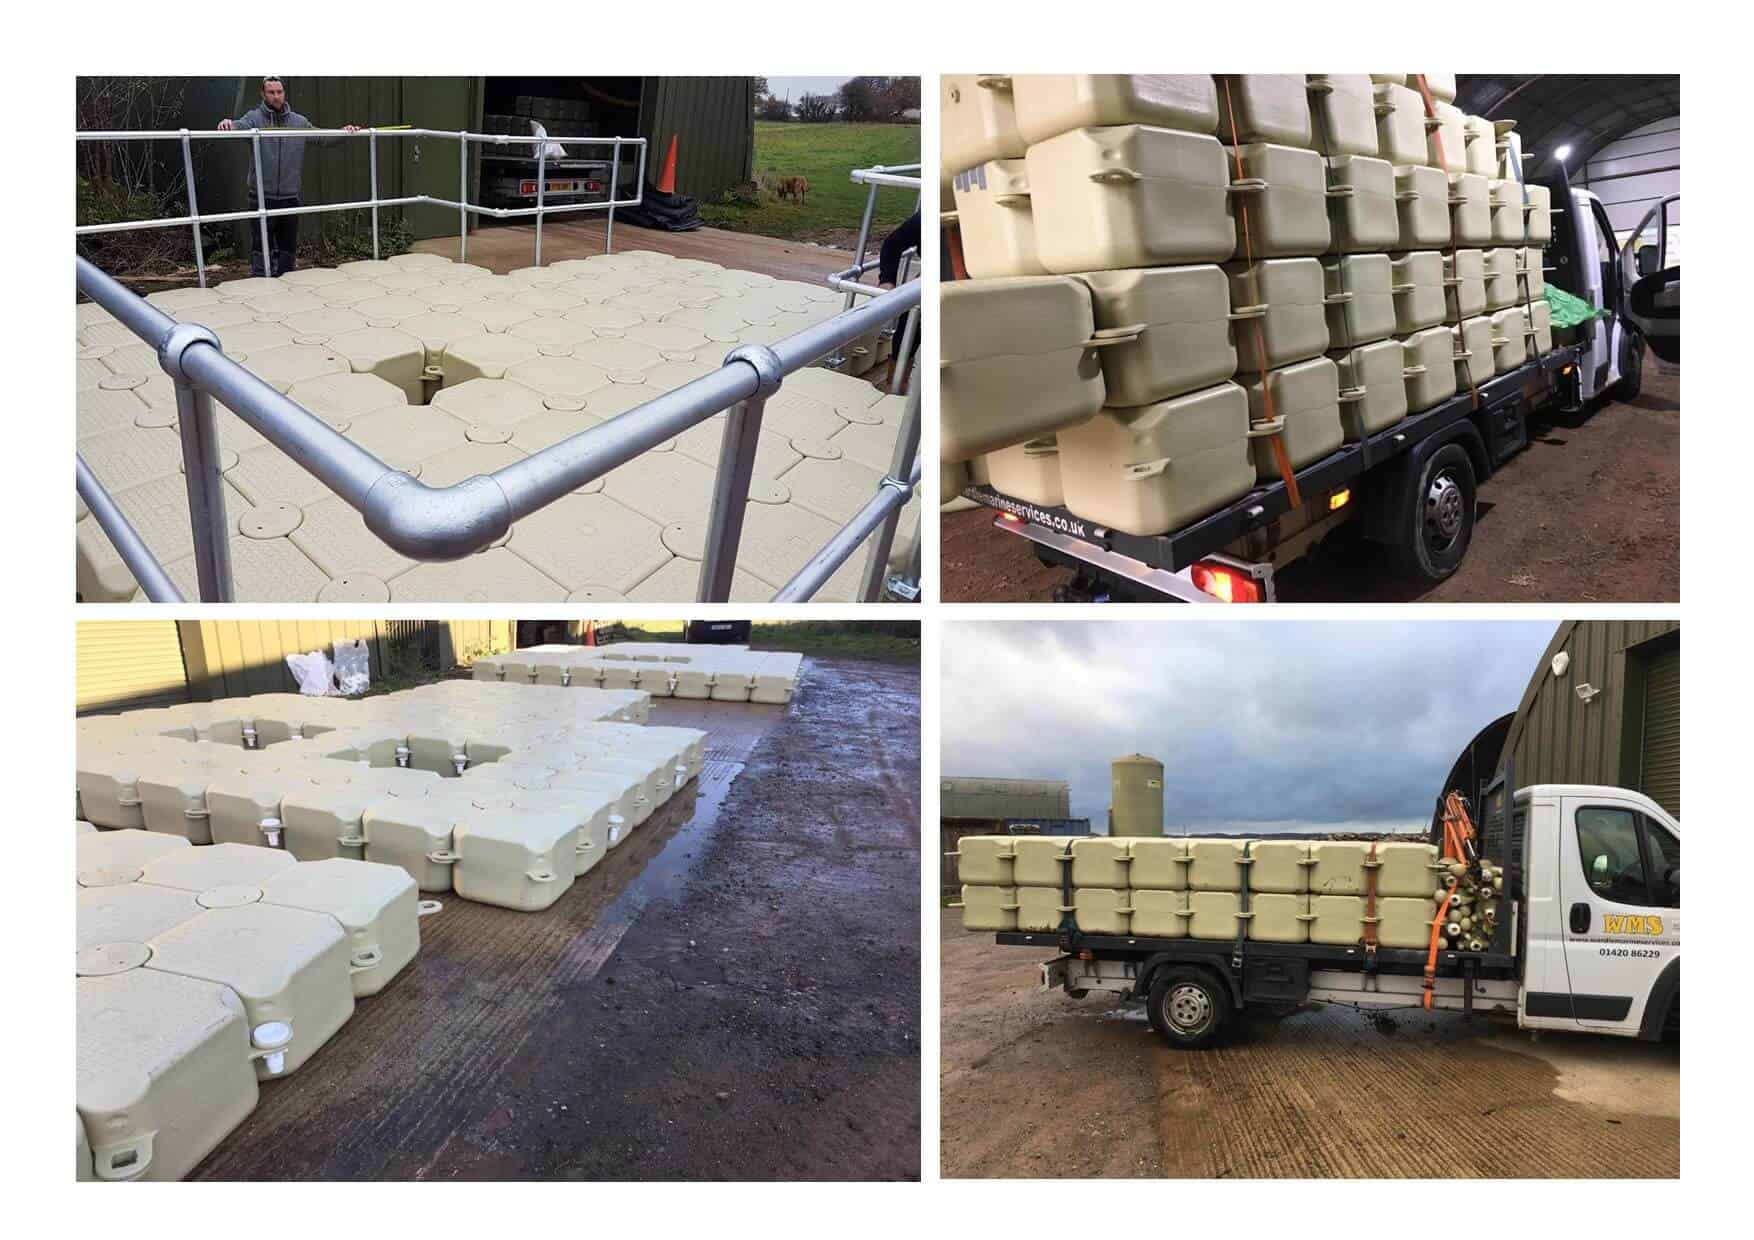 modular cubes with aluminium handrails and moon pools. trucks ready for deliveries